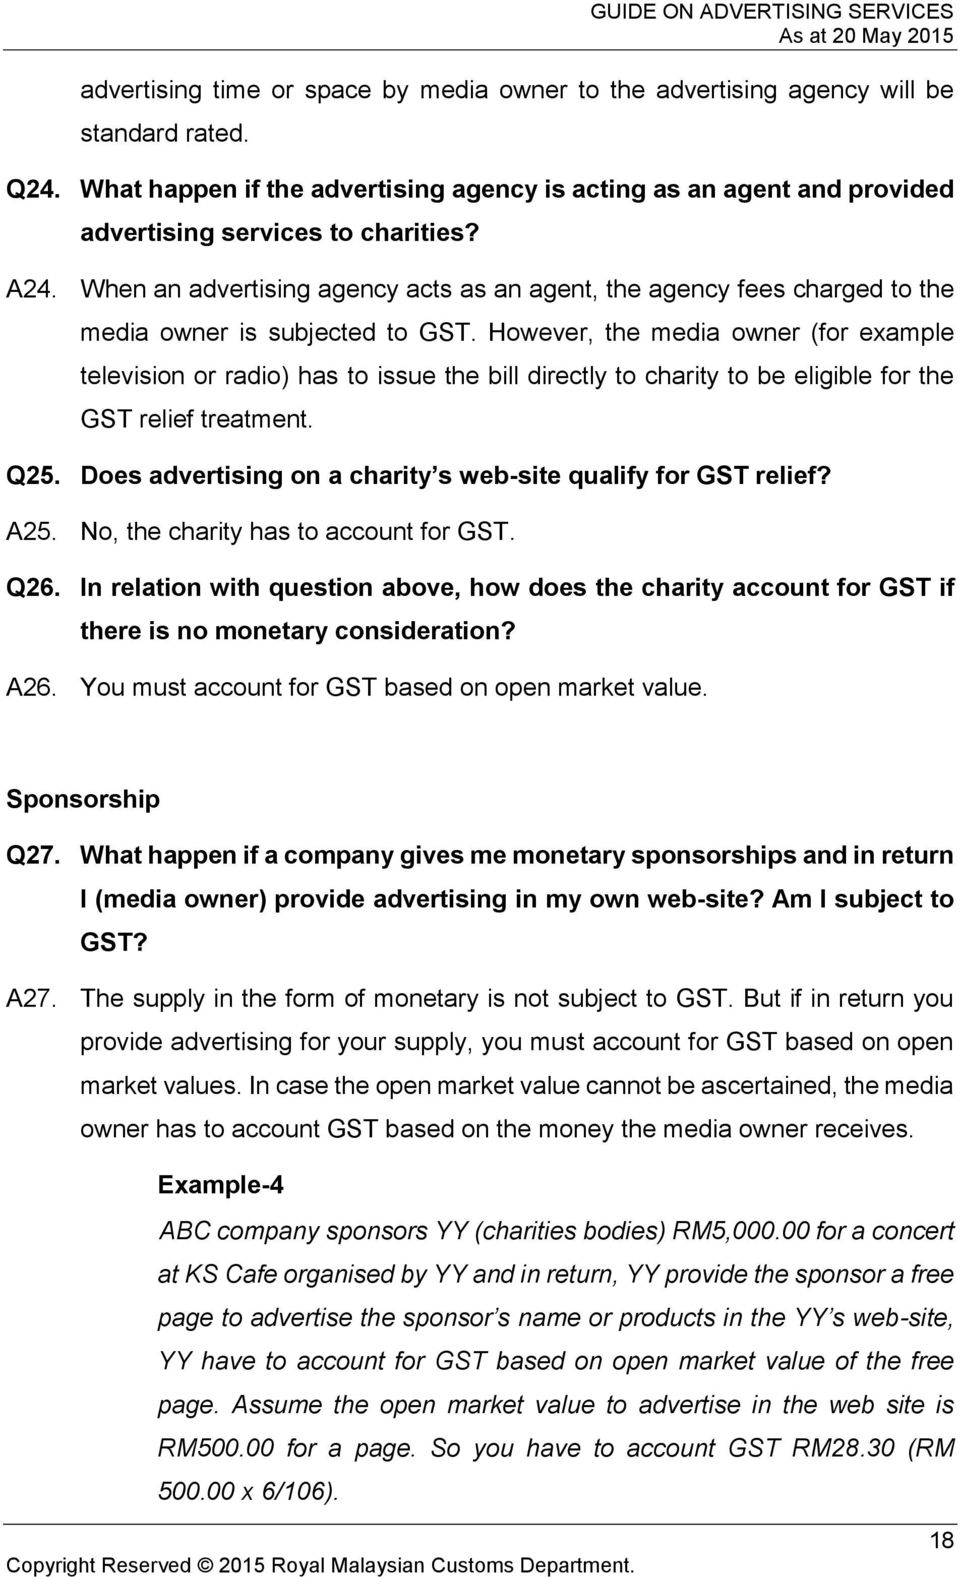 When an advertising agency acts as an agent, the agency fees charged to the media owner is subjected to GST.